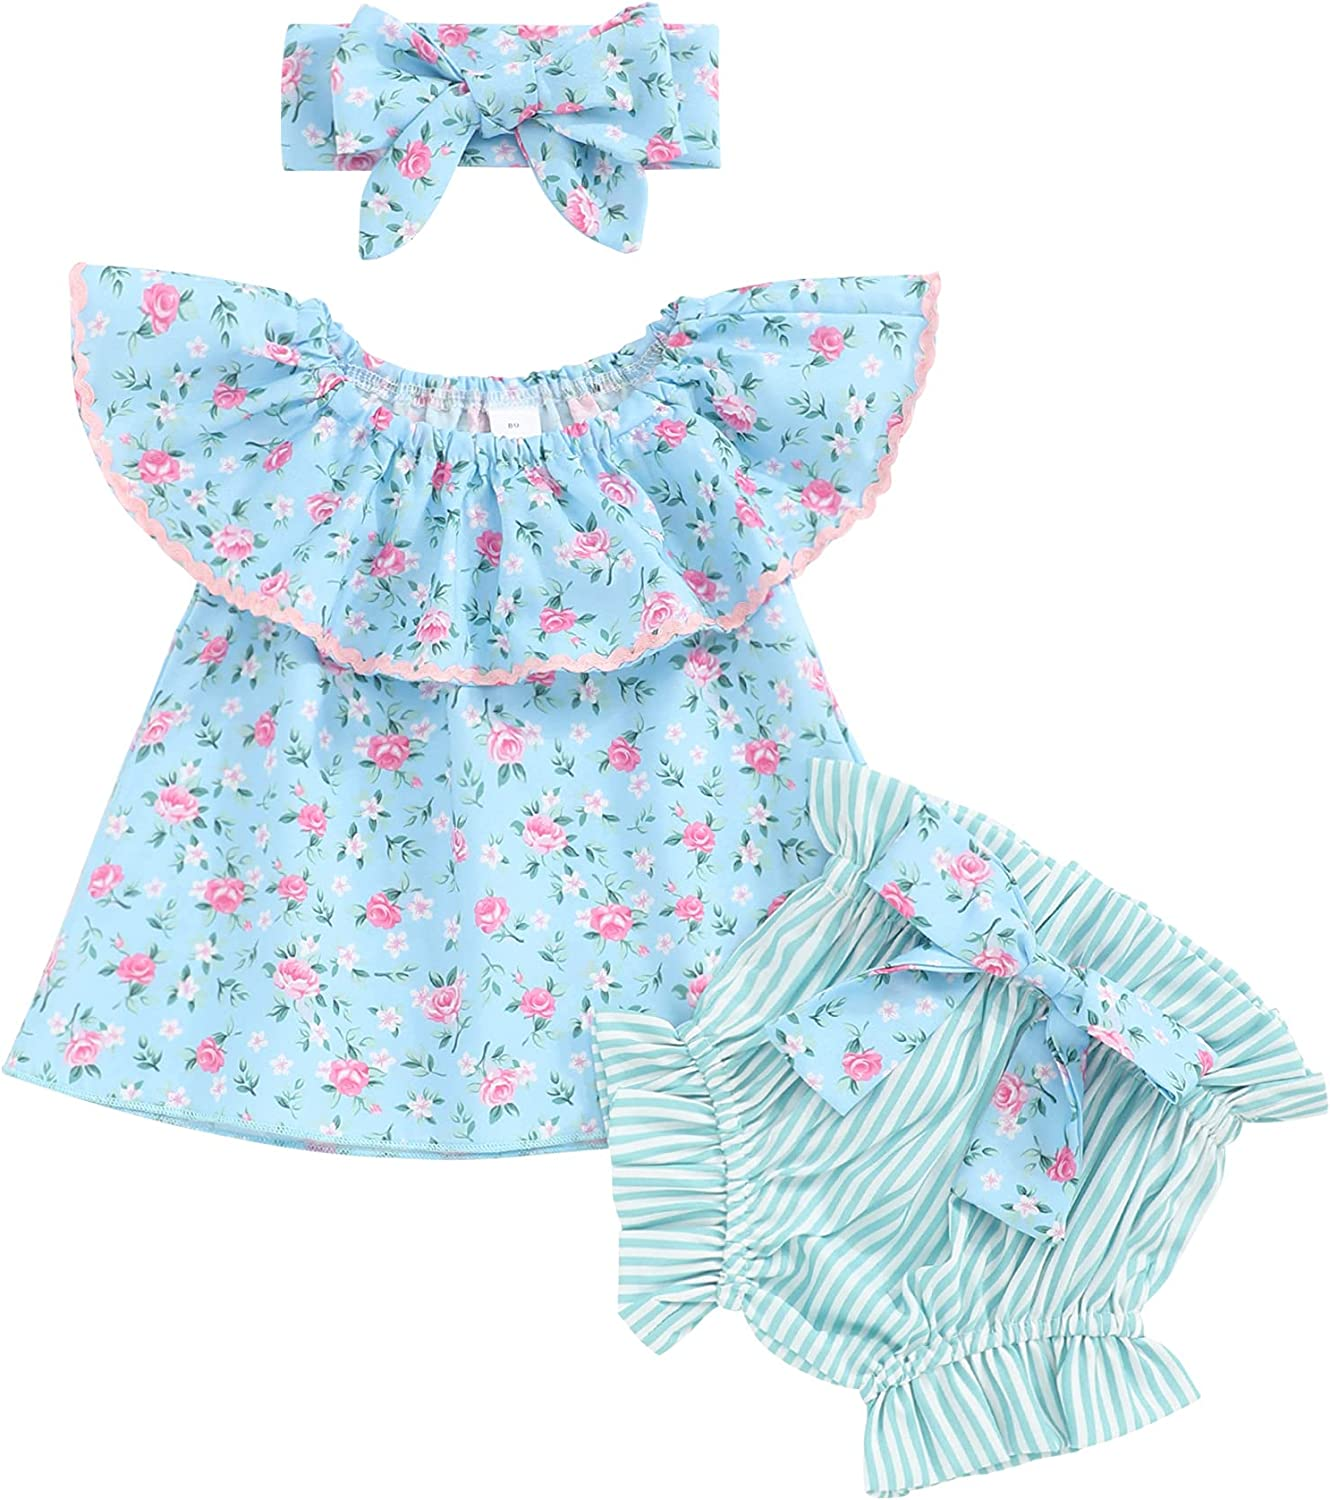 Xuuly Toddler Baby Girl Clothes Stay Wild Letter Print Ruffled Sleeve Shirt Top+Floral Shorts Baby Girl Summer Outfits